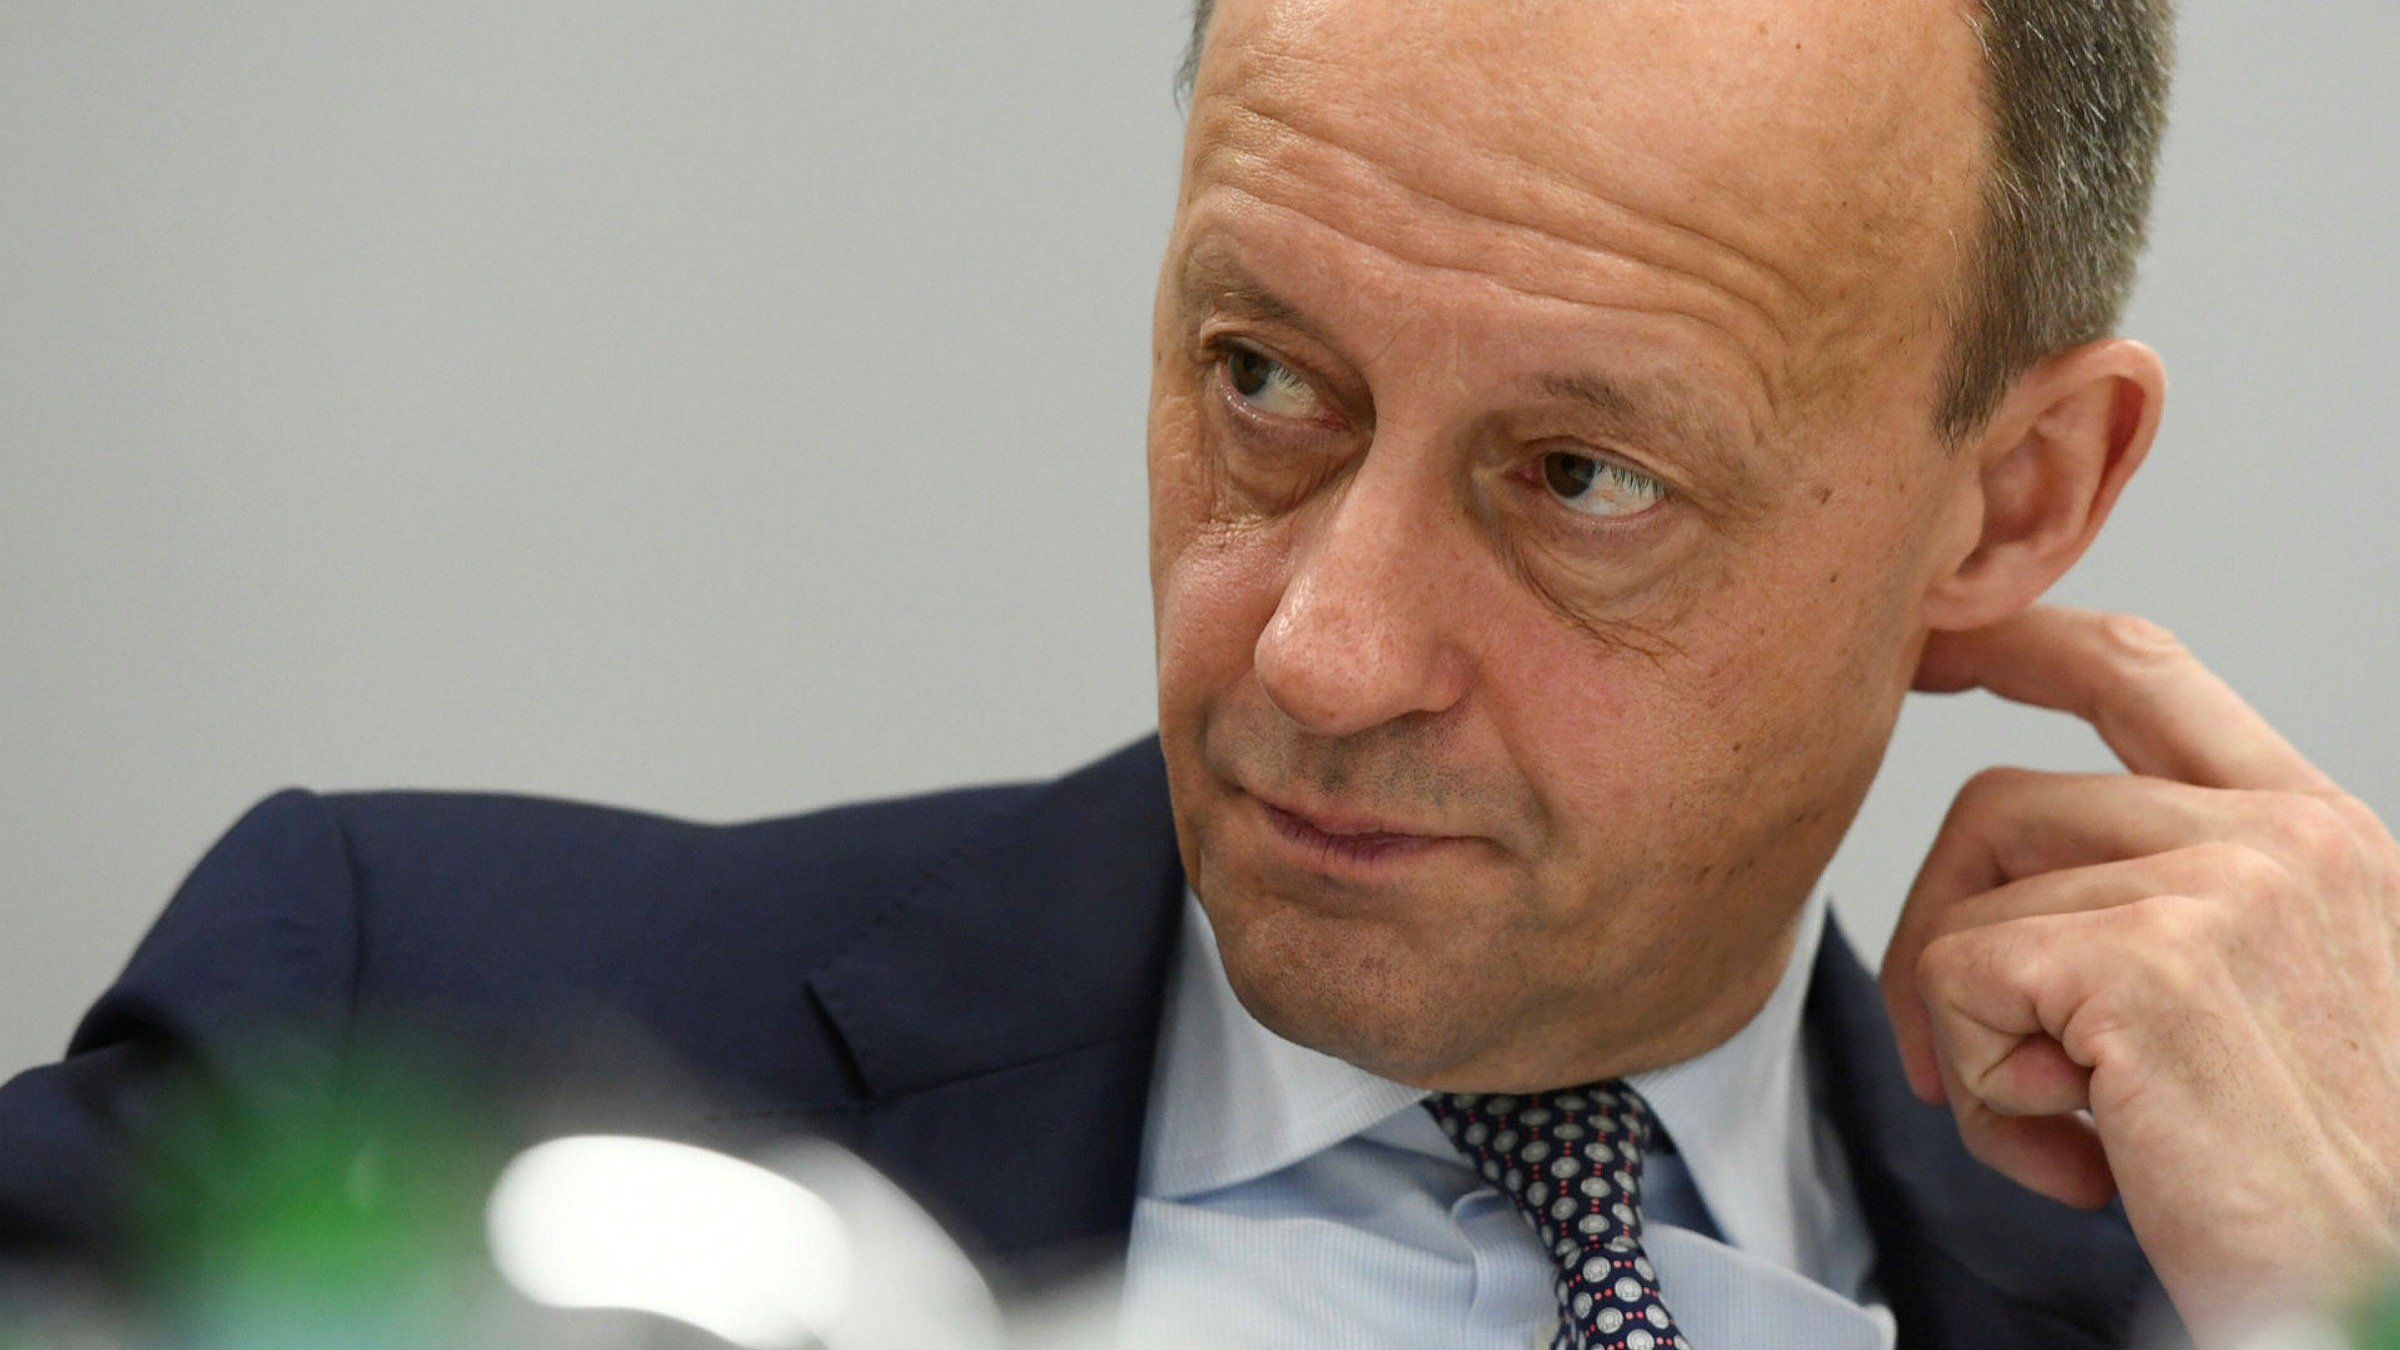 There S Nothing Retro About Me Friedrich Merz On His Bid To Succeed Angela Merkel Financial Times